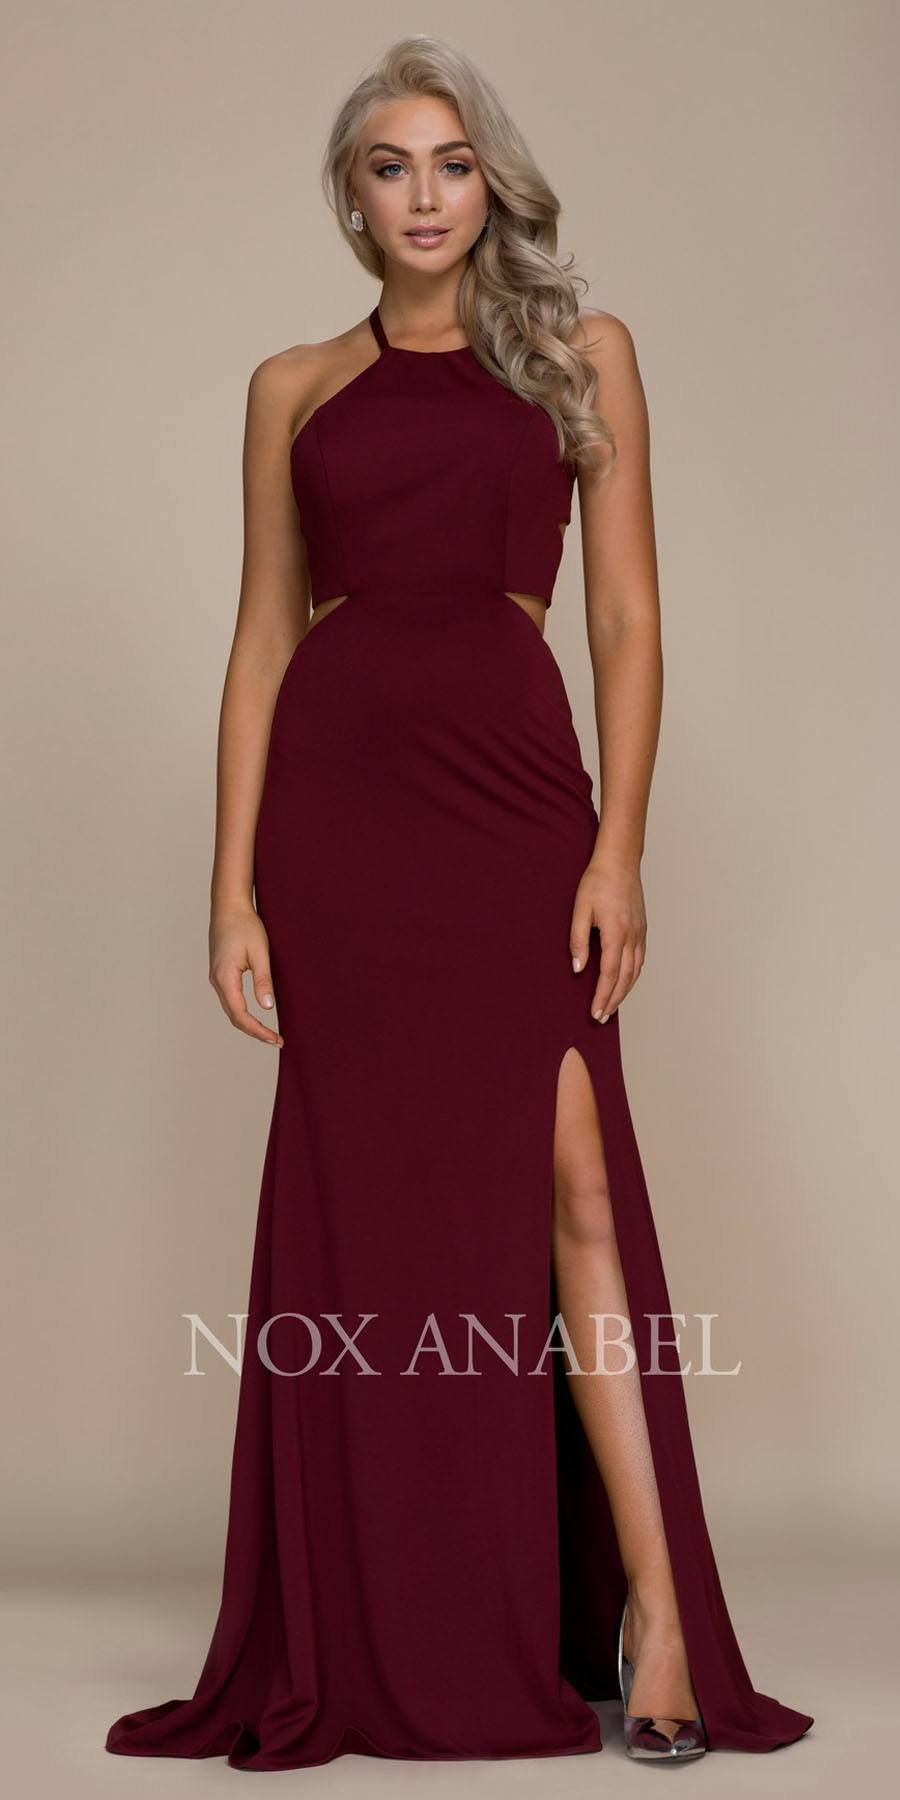 266c83ba62b Burgundy Halter Cut Out Long Prom Dress Strappy Back with Slit. Tap to  expand